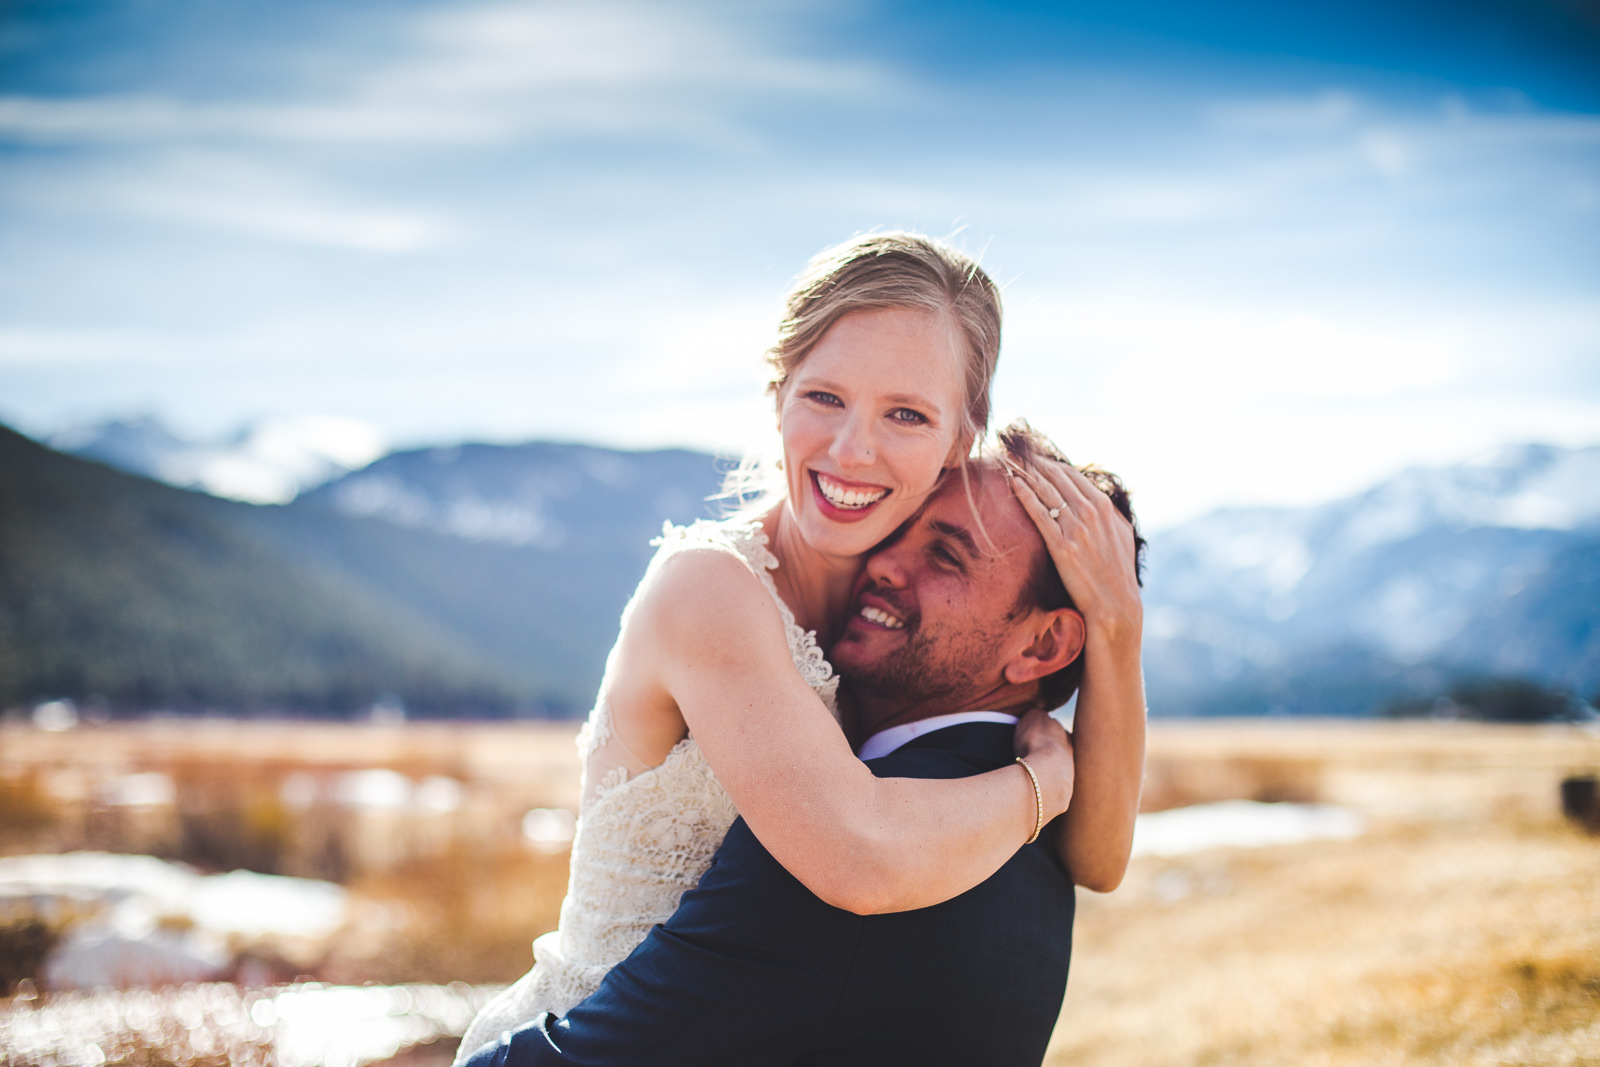 Bride hugs her groom as he picks her up with the rocky mountains behind them